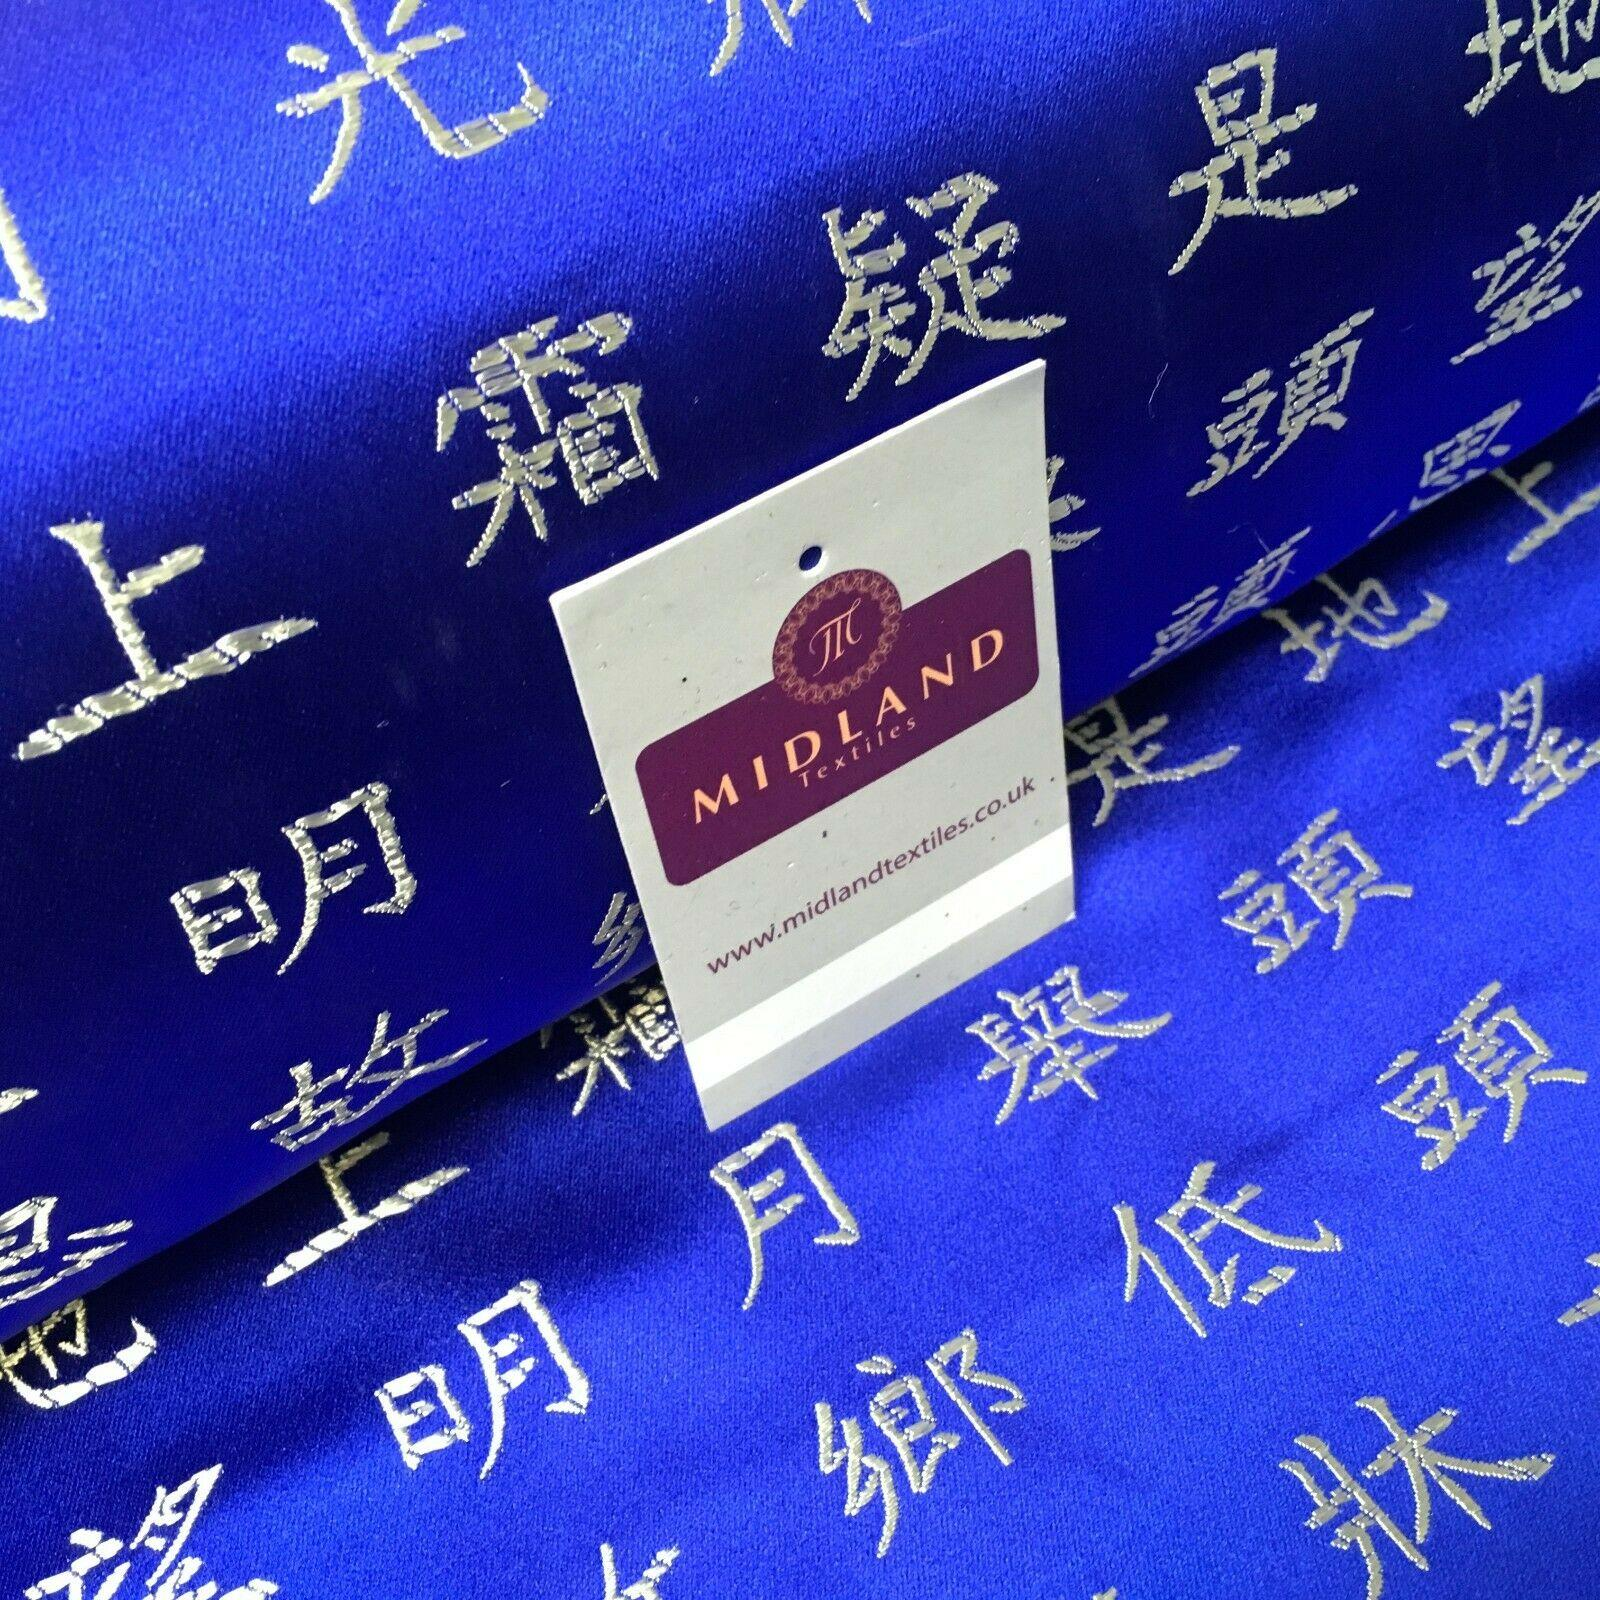 Royal Blue and Silver Chinese Words Brocade Dress Fabric 110cm Wide M395-24